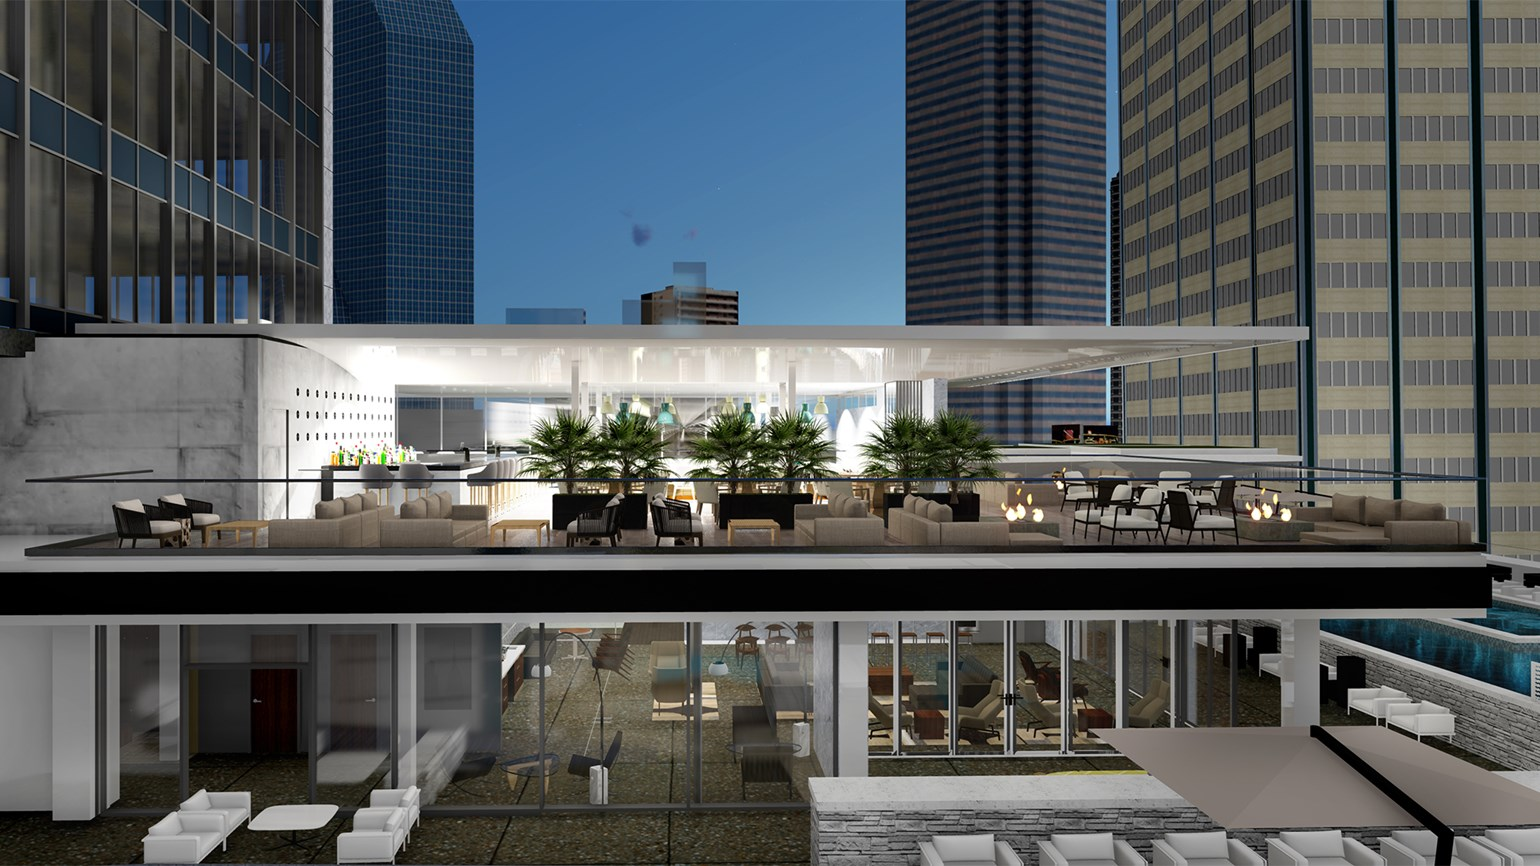 Thompson hotel to be part of Drever development in Dallas